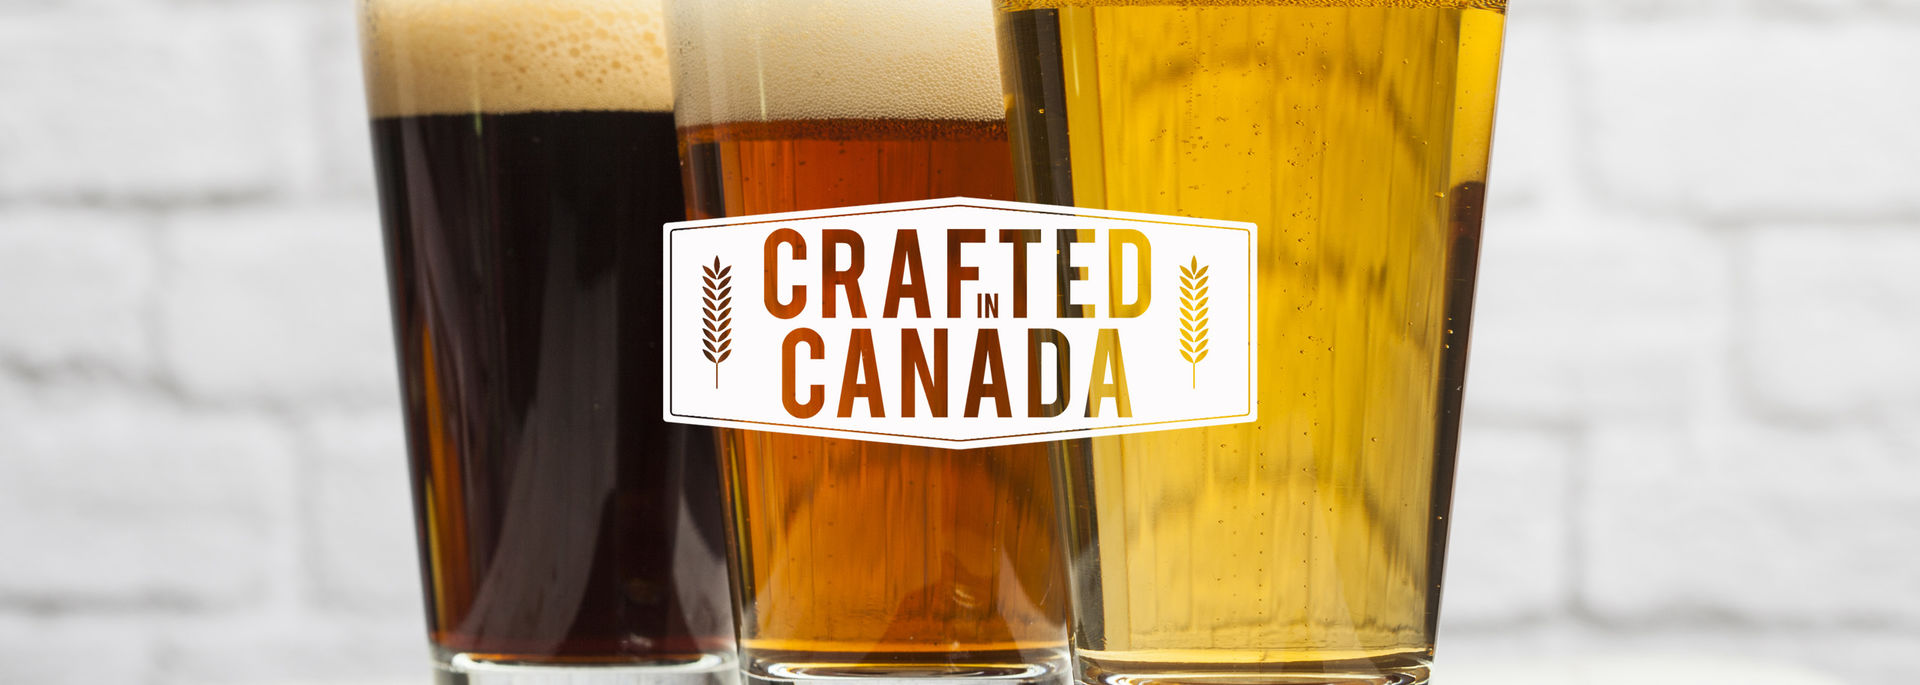 #Crafted in Canada channel